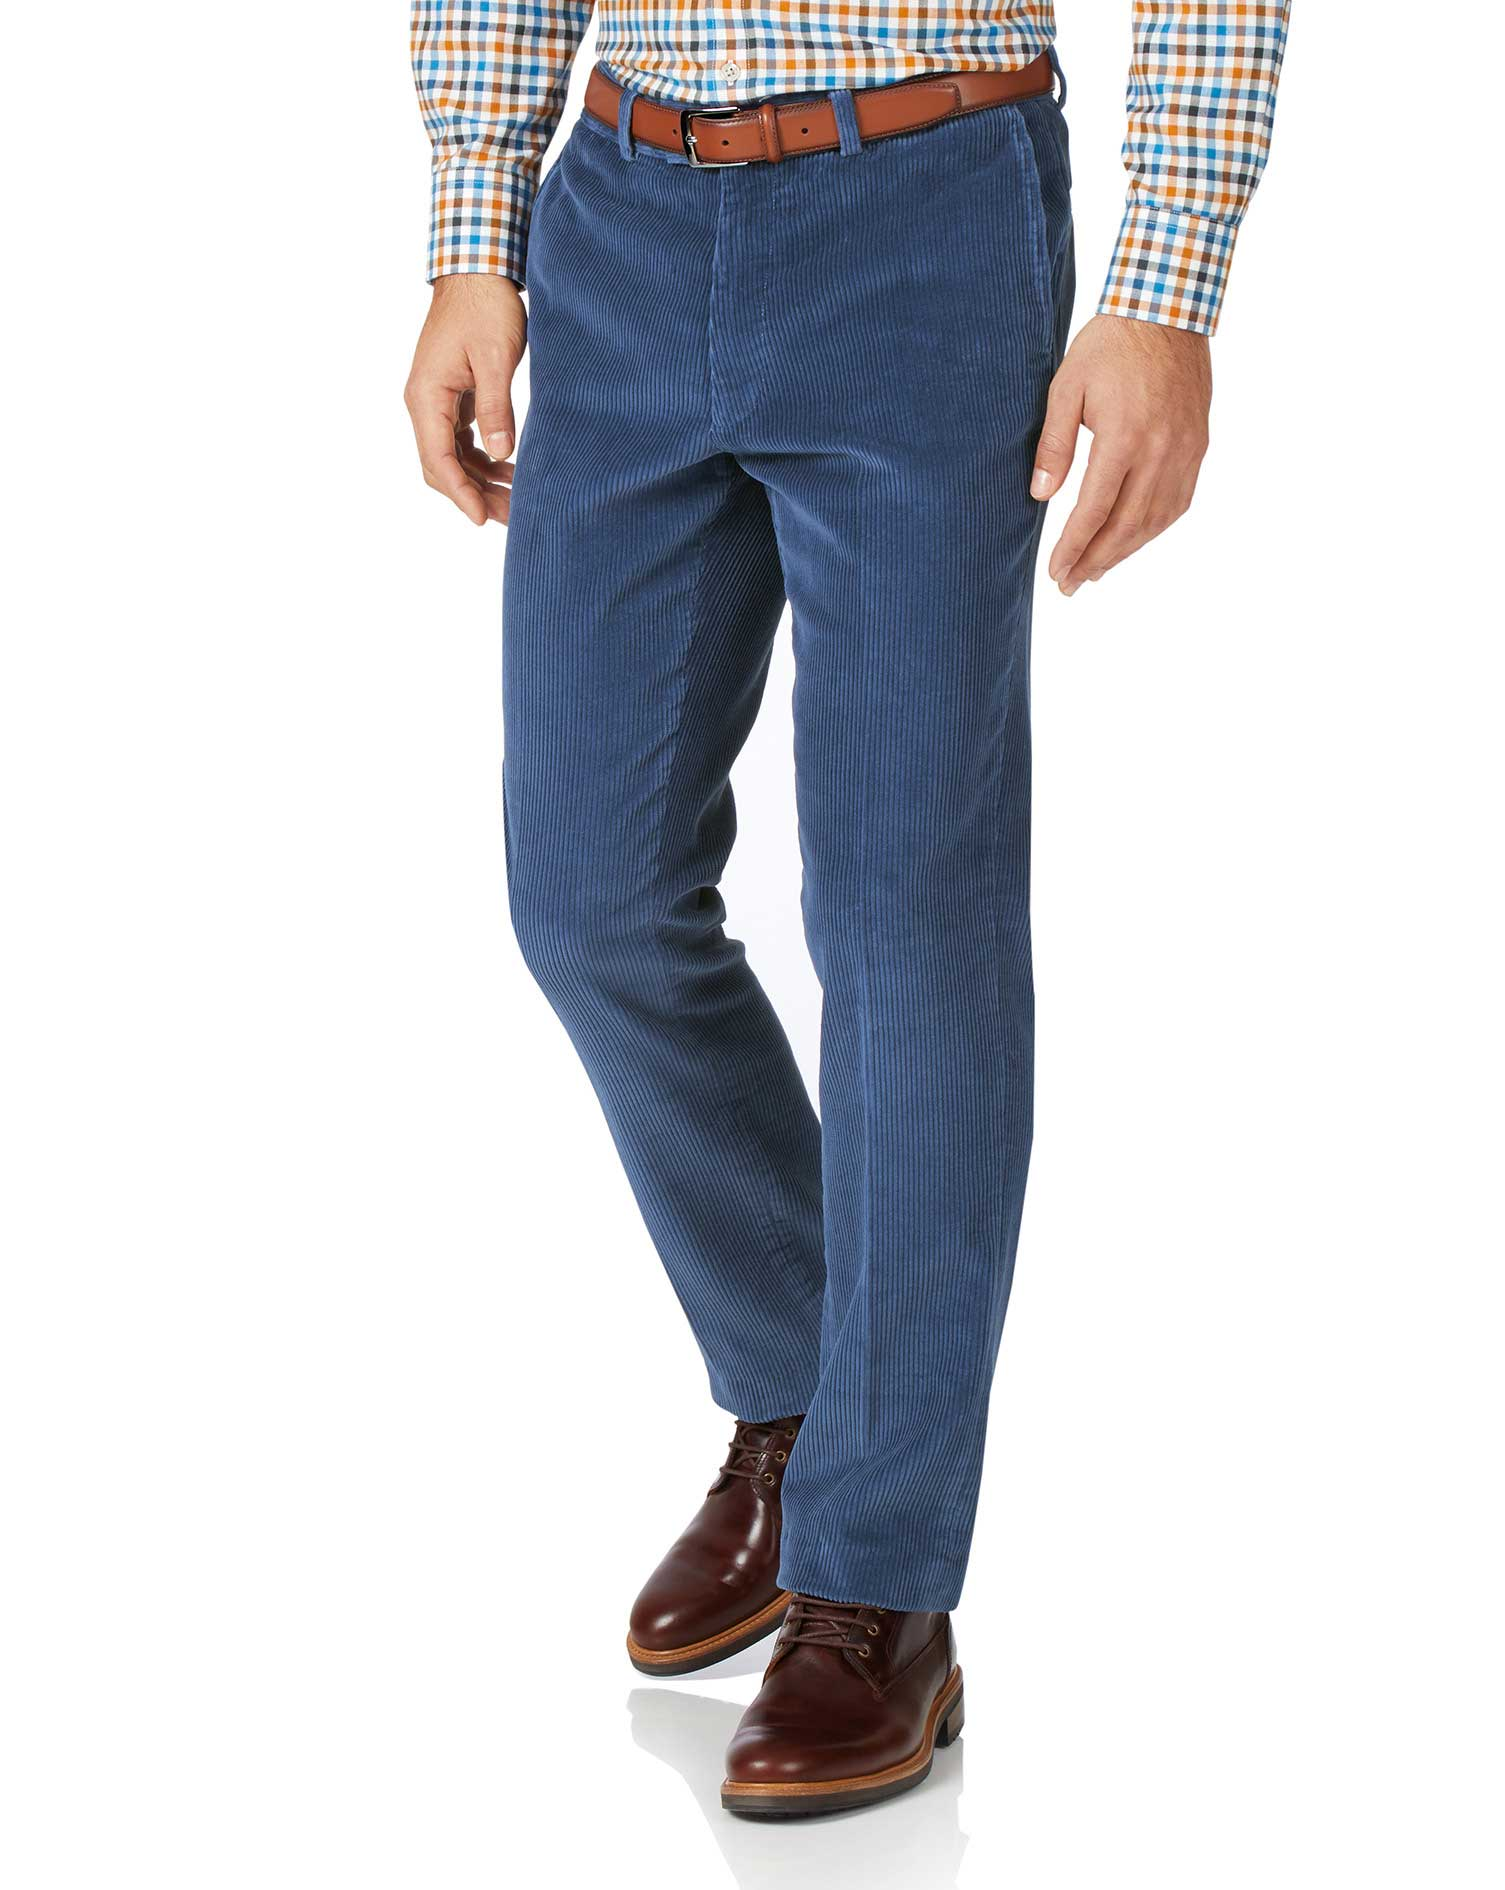 Airforce Blue Classic Fit Jumbo Corduroy Trousers Size W40 L30 by Charles Tyrwhitt